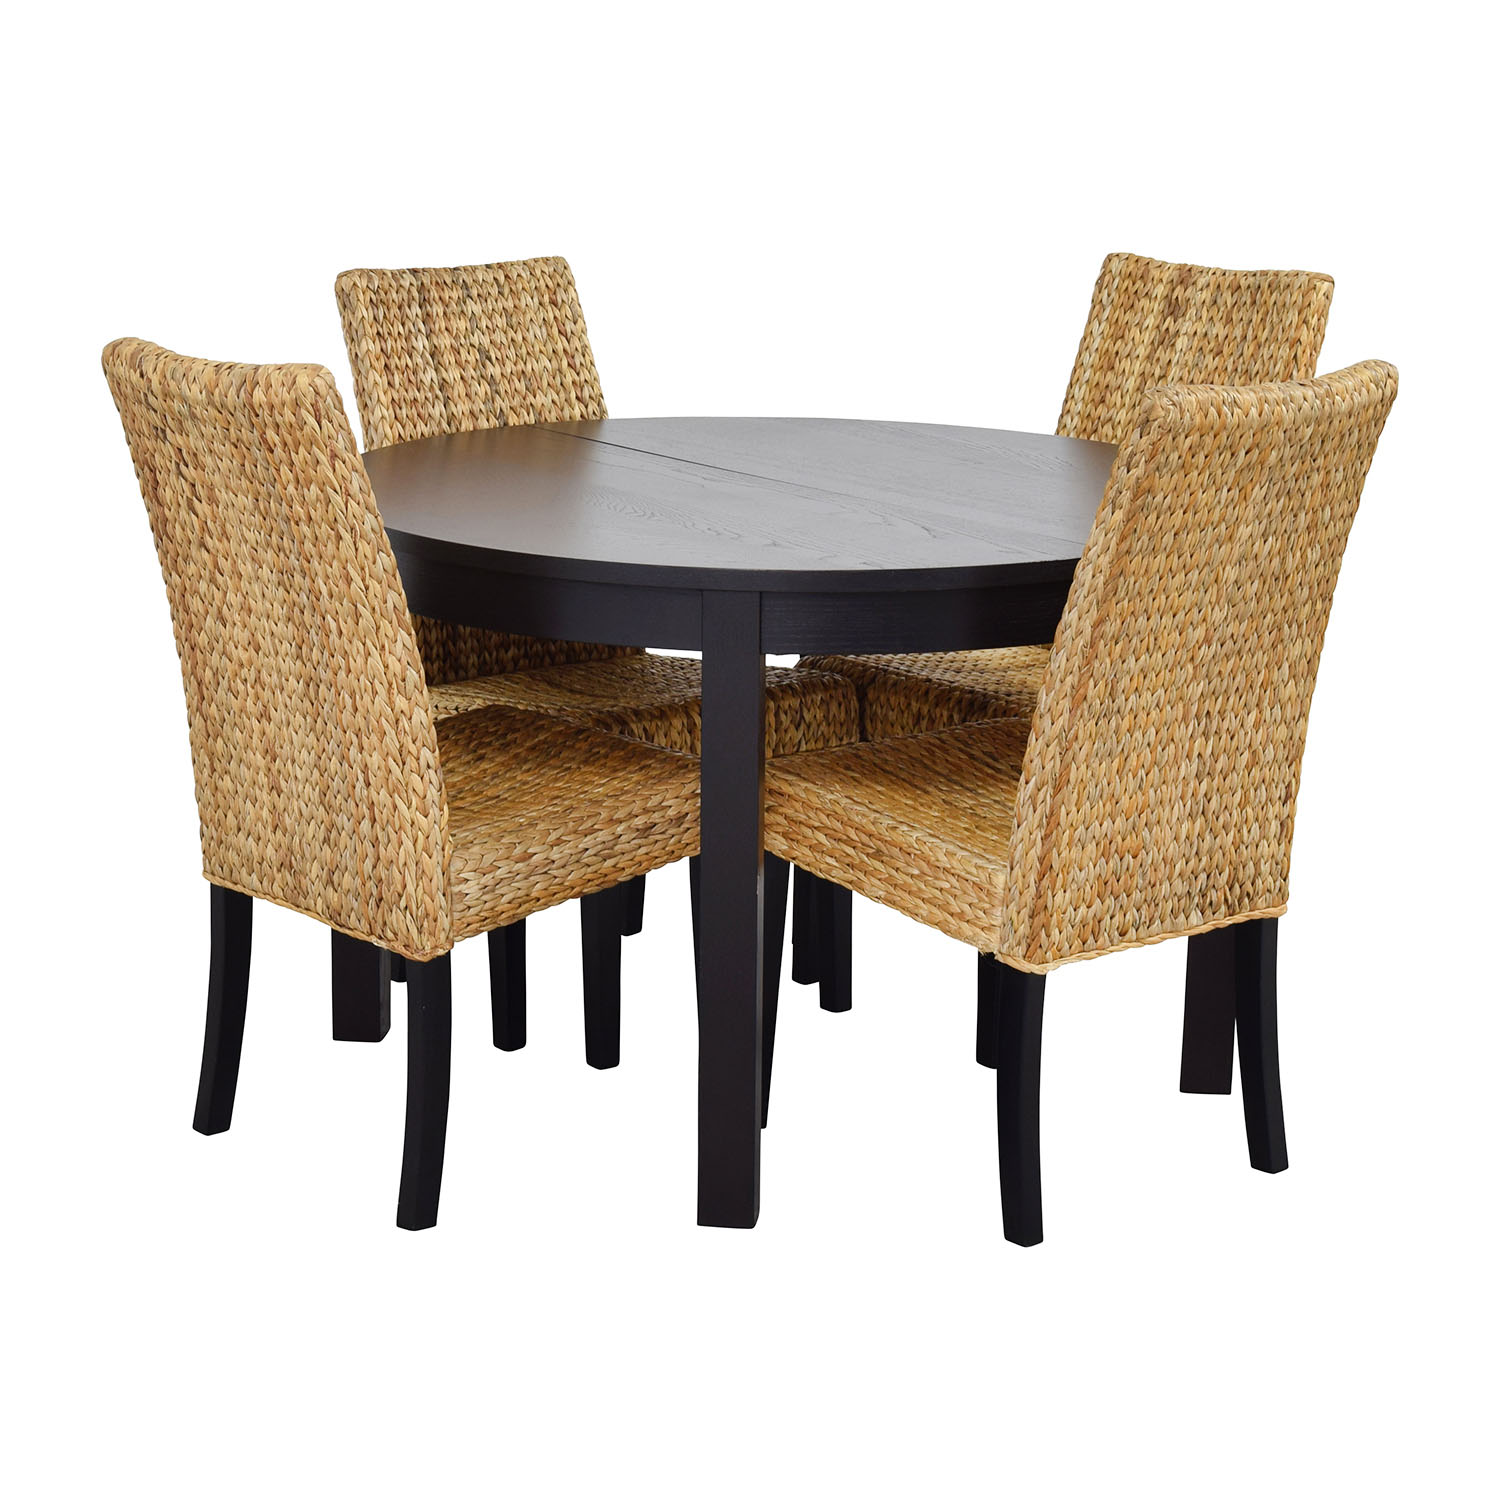 66 off macy 39 s ikea round black dining table set with for Round dining table set